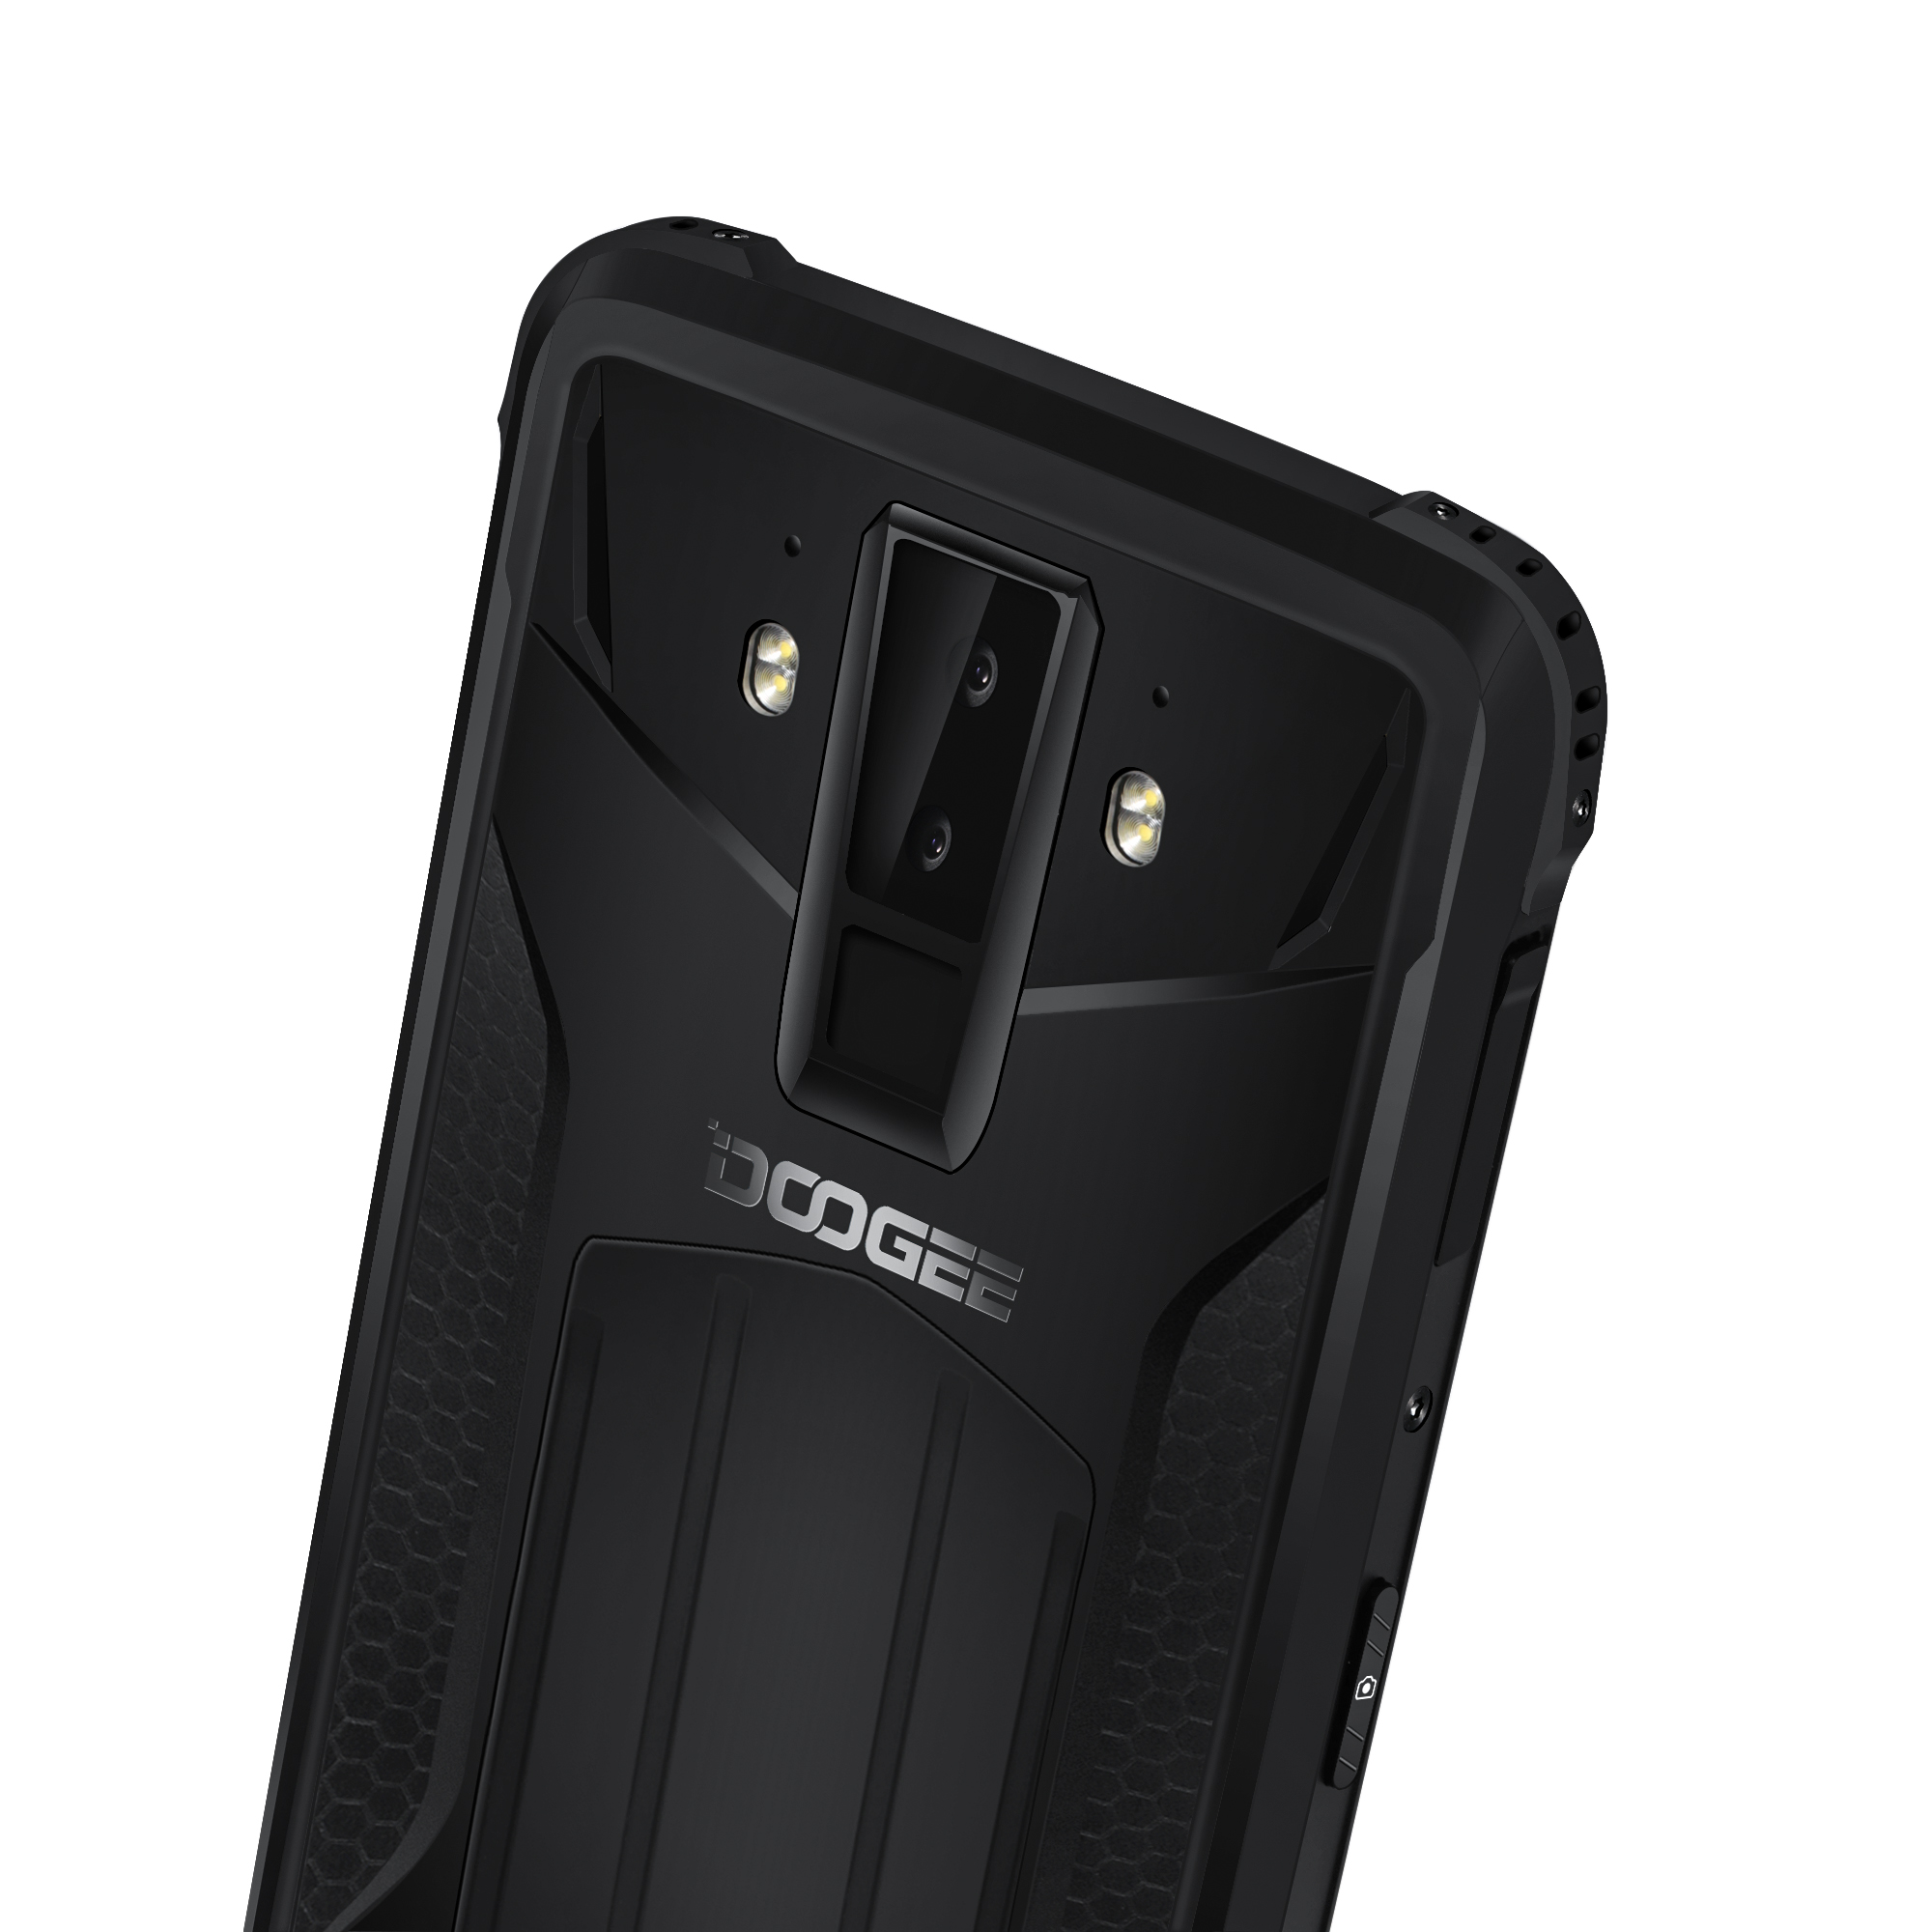 Image 5 - DOOGEE S90 Super Box Rugged Mobile Phone 6.18inch Smartphone IP68/IP69K Helio P60 Octa Core 6GB 128GB 3 Extra Module Cellphone-in Cellphones from Cellphones & Telecommunications